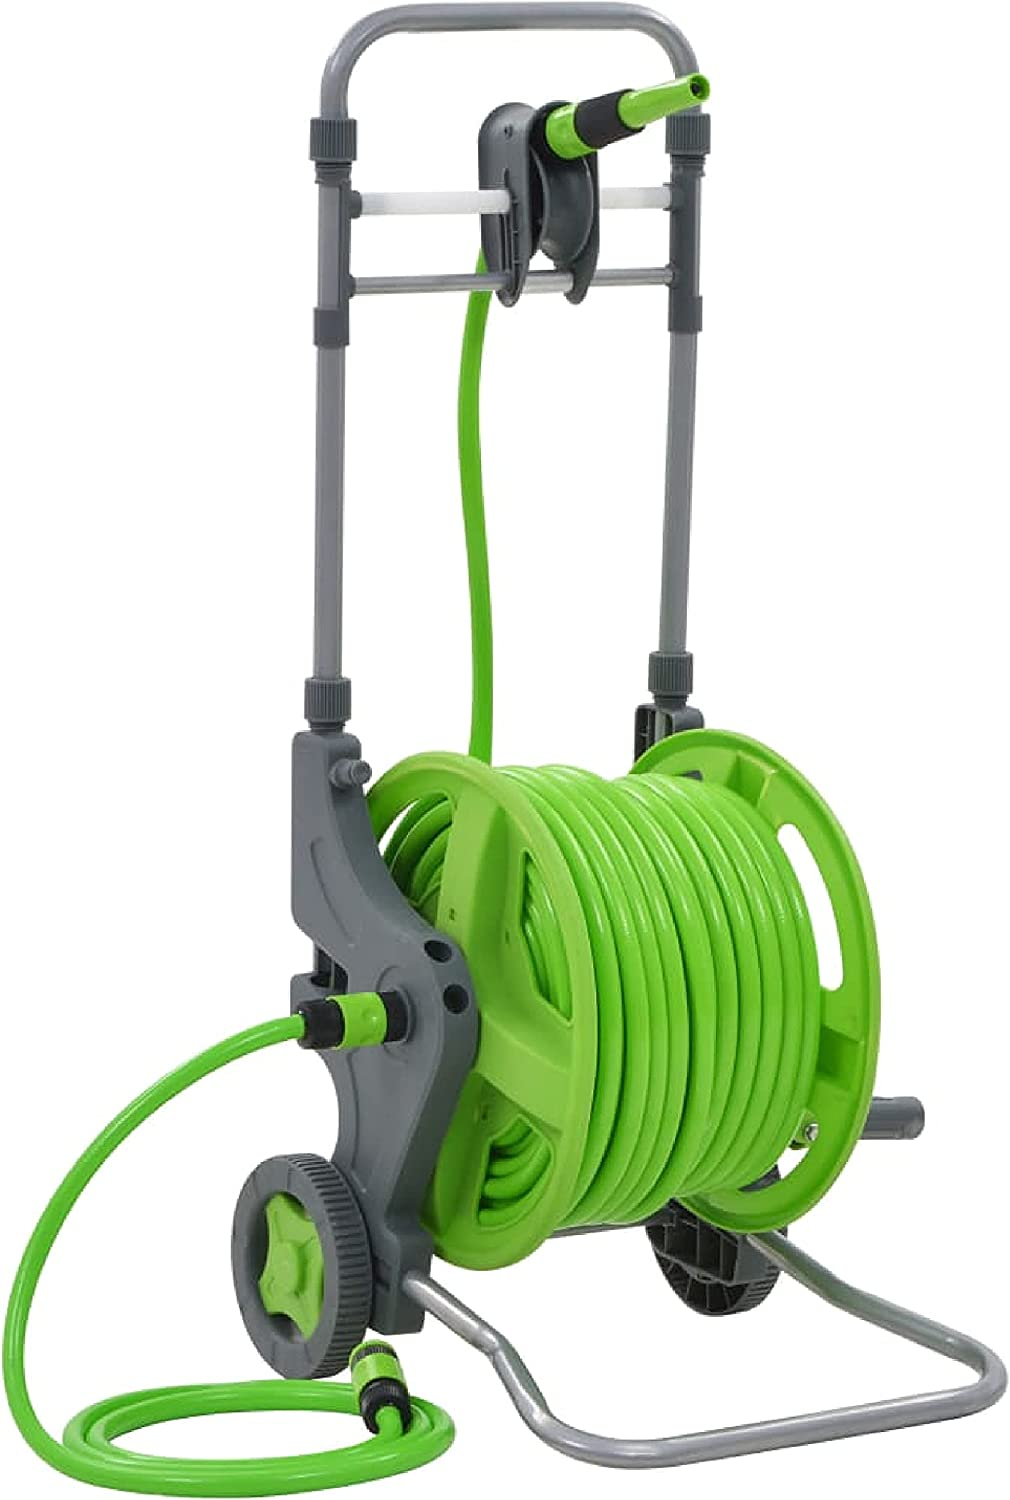 Garden Indianapolis Mall Hose Storage Water with Wheels 174.6'+6.6' Charlotte Mall Reel